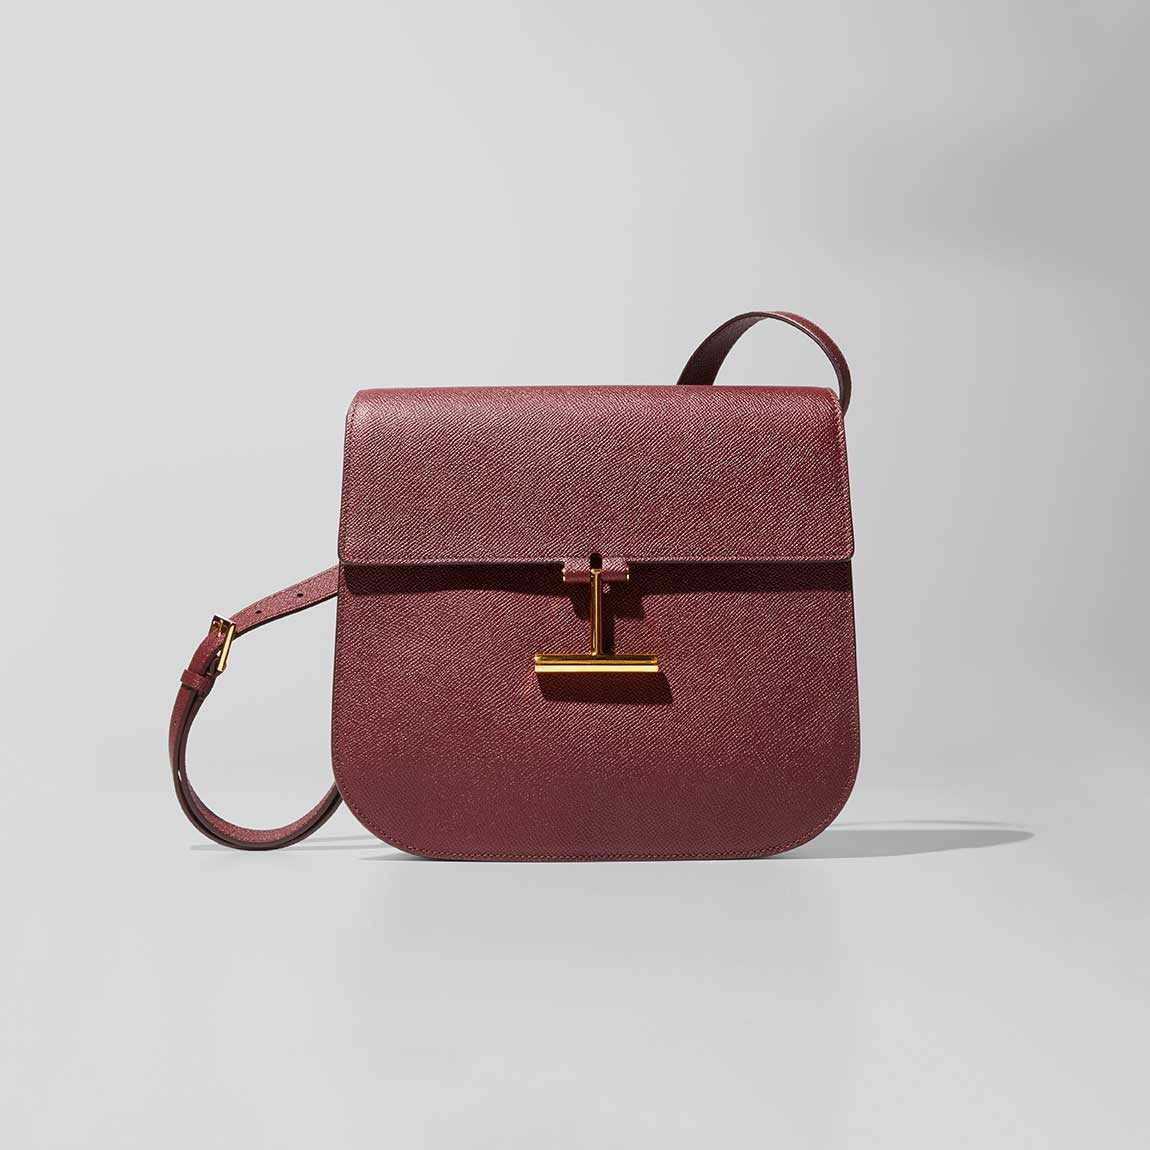 Shop Pre-Fall Handbags